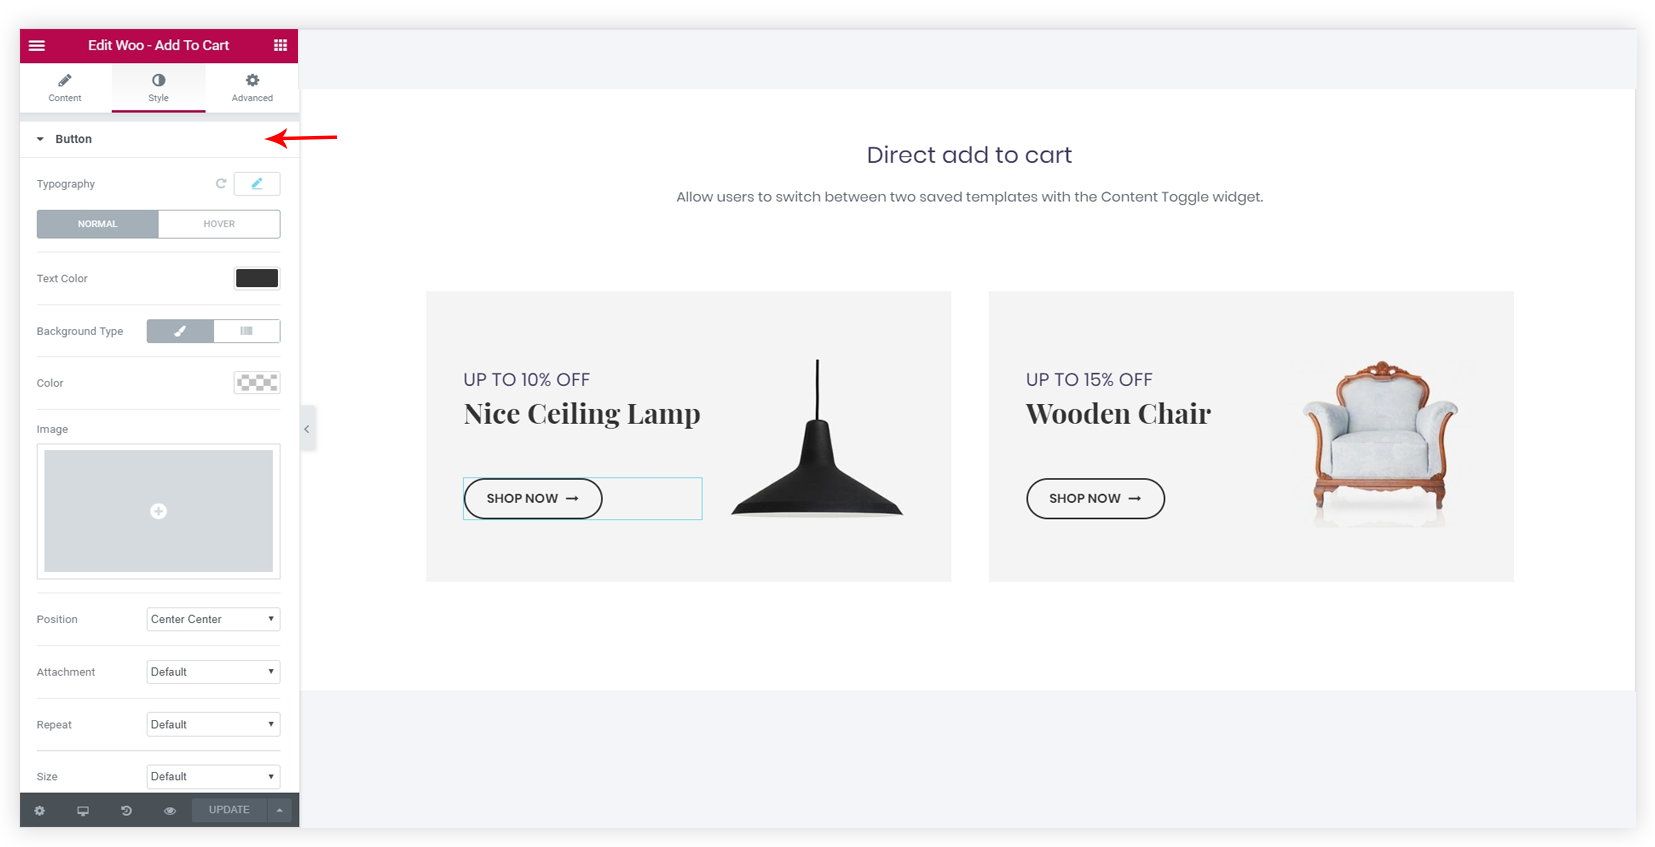 How to add WooCommerce Add To Cart button on the page